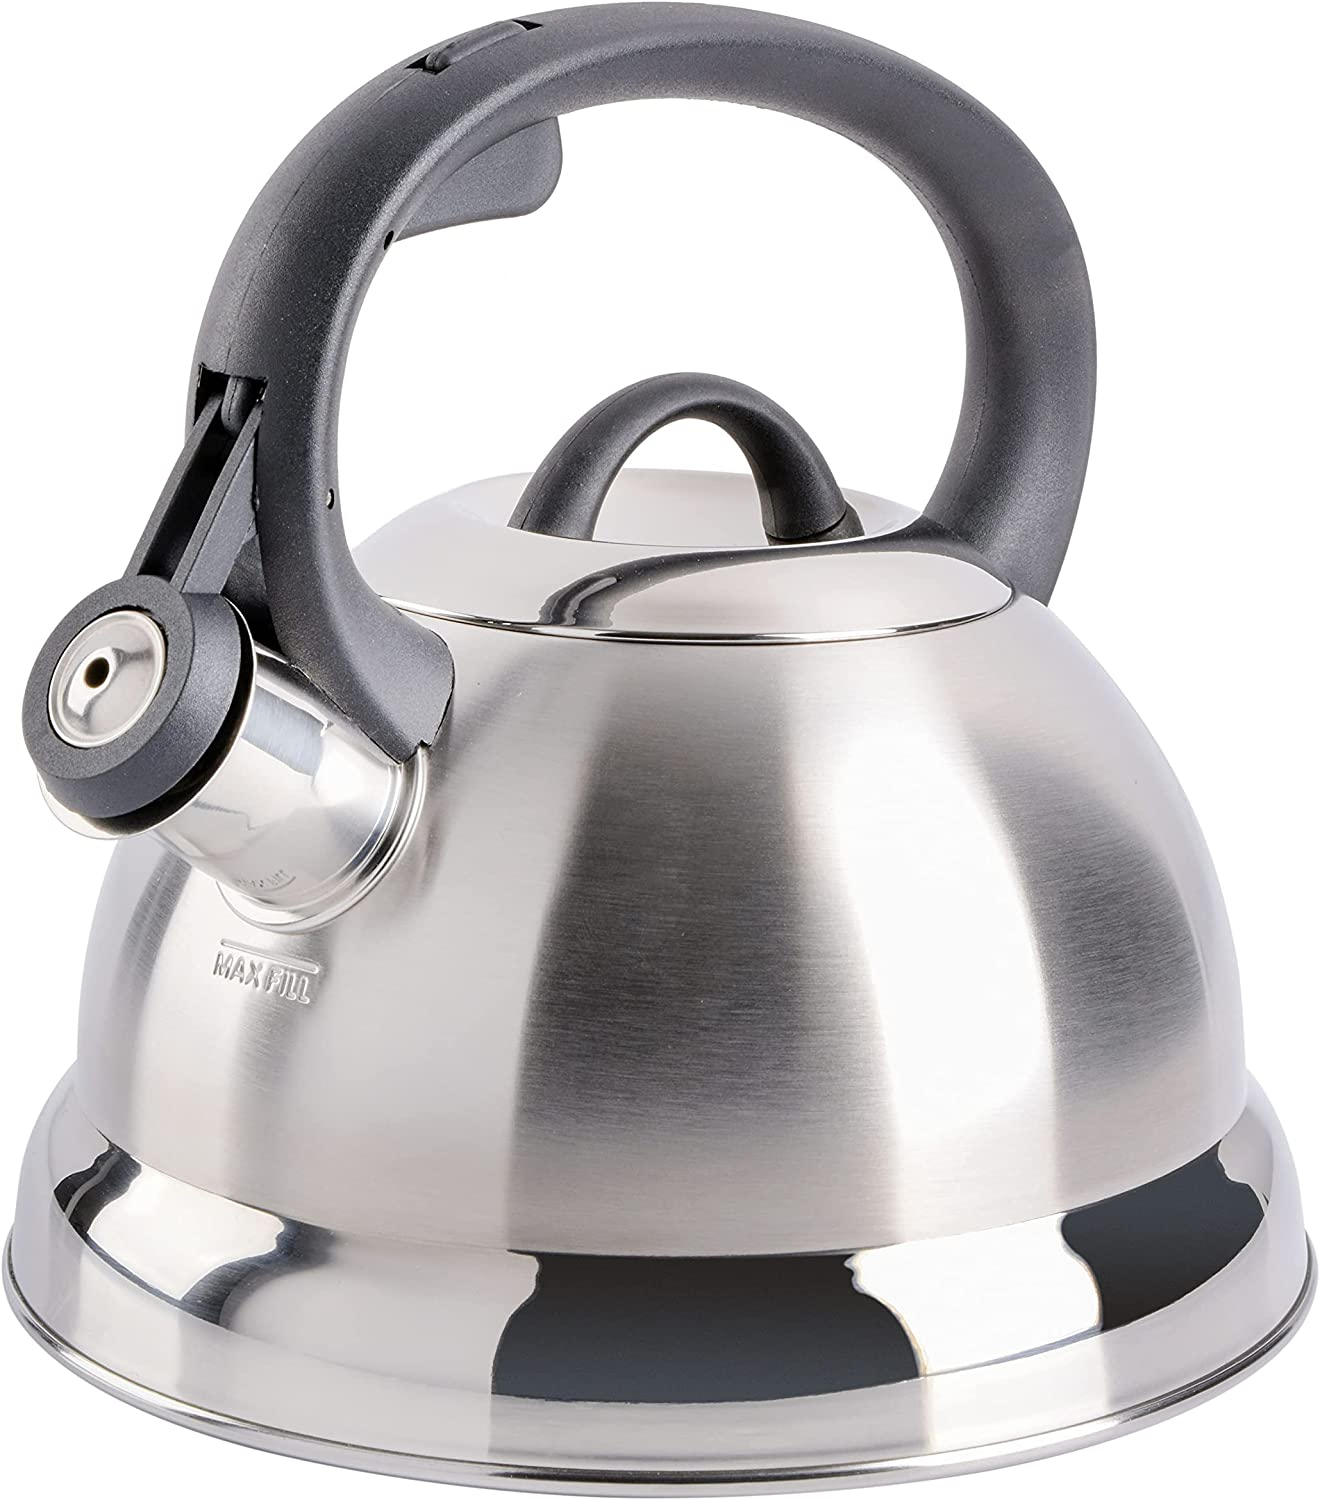 Best Tea Kettle For Gas Stoves 2021: Top 7 Recommendations For Tea Lovers Out There 1 #cookymom